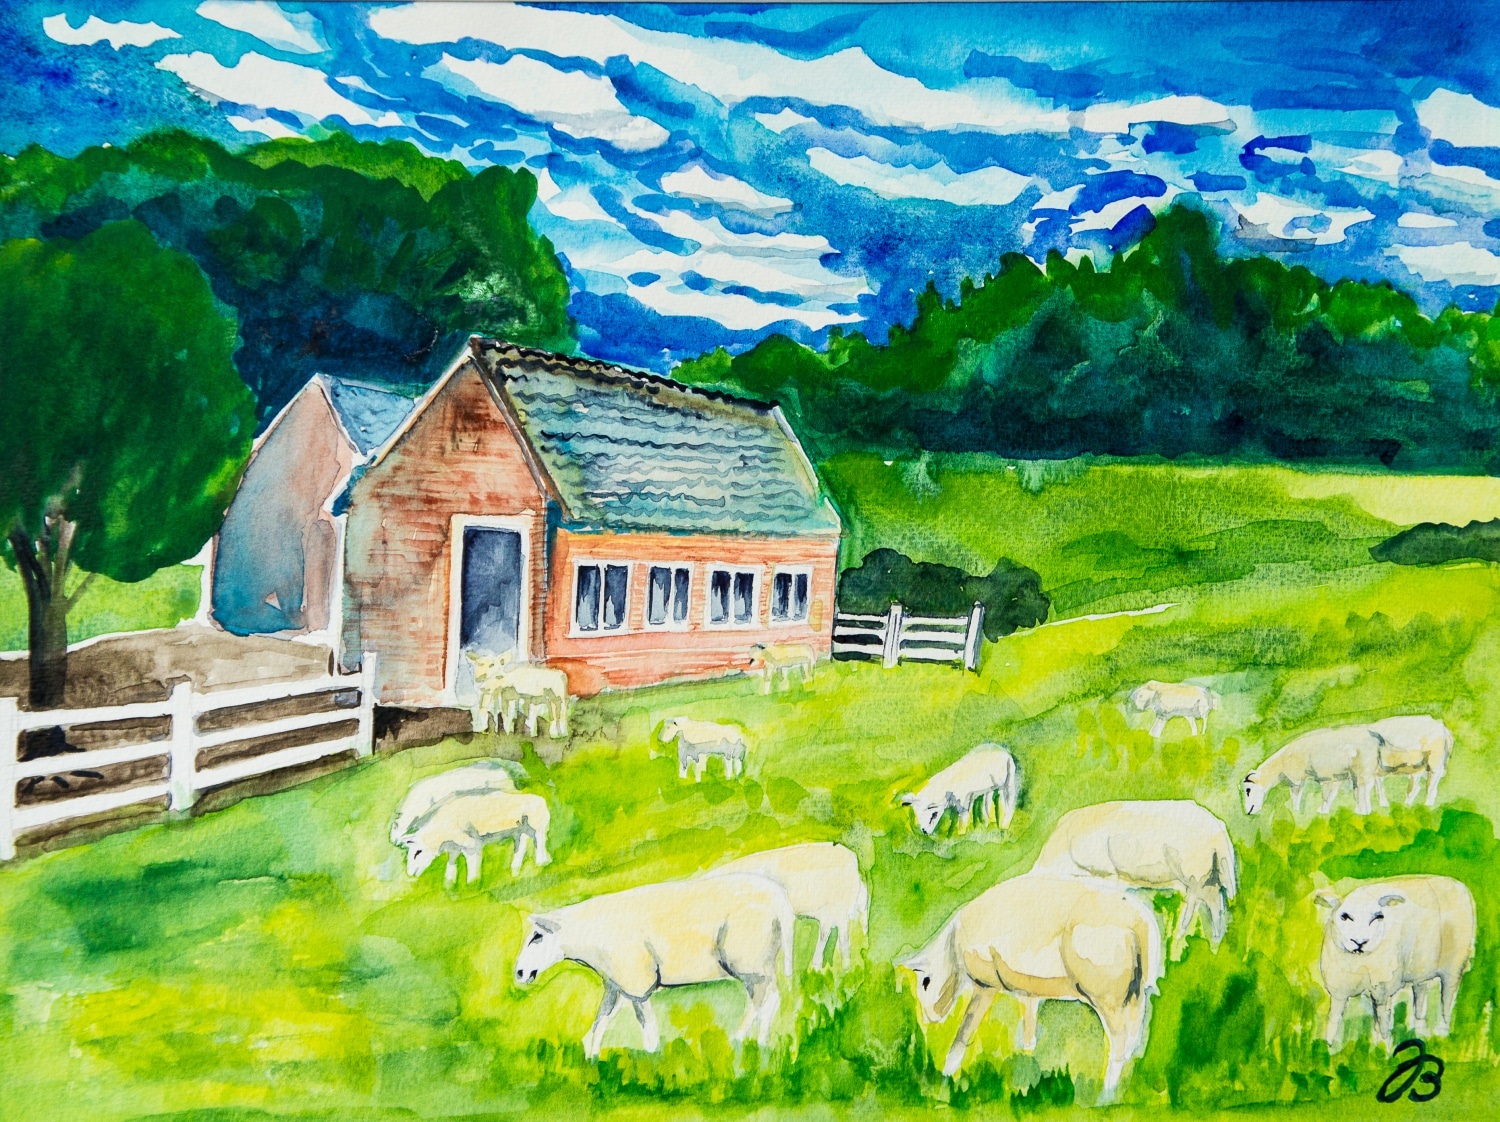 530901  Schaffarm * Sheep Farm